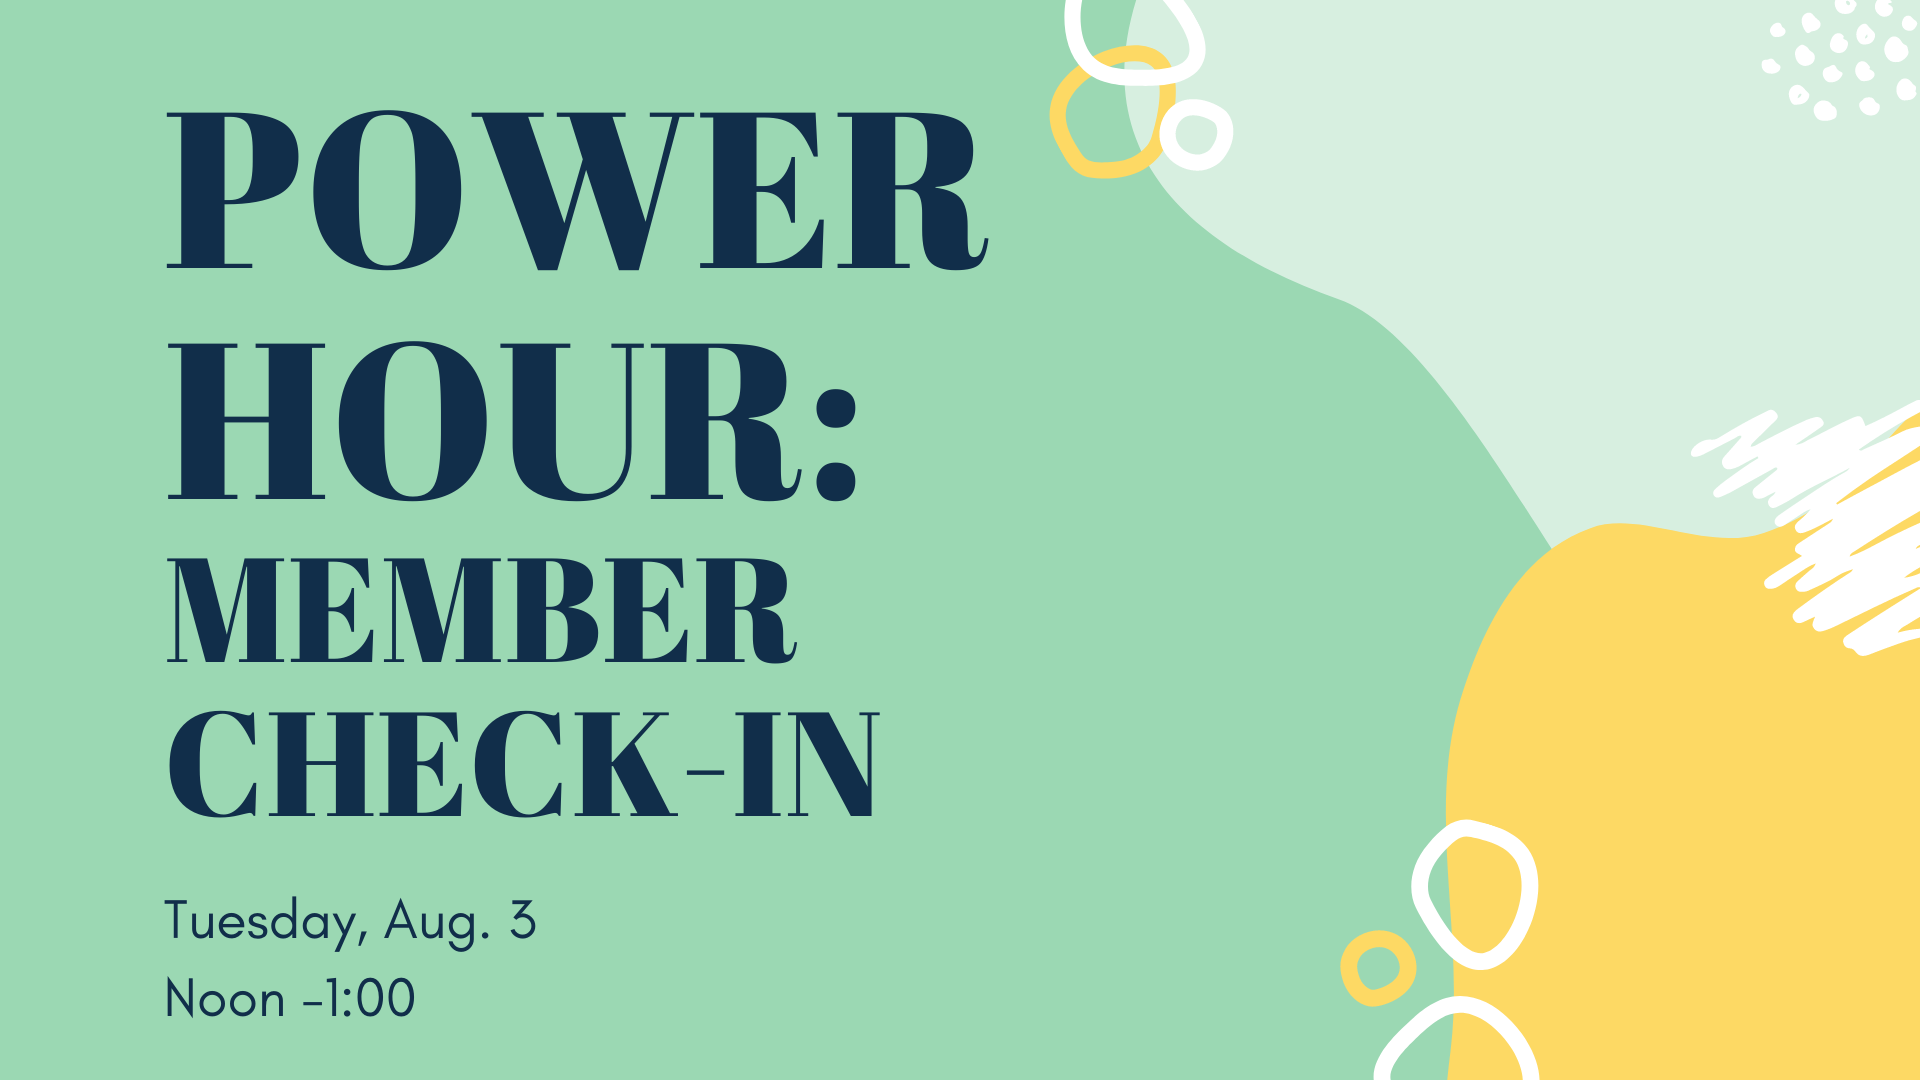 POWER HOUR: Member Check-in